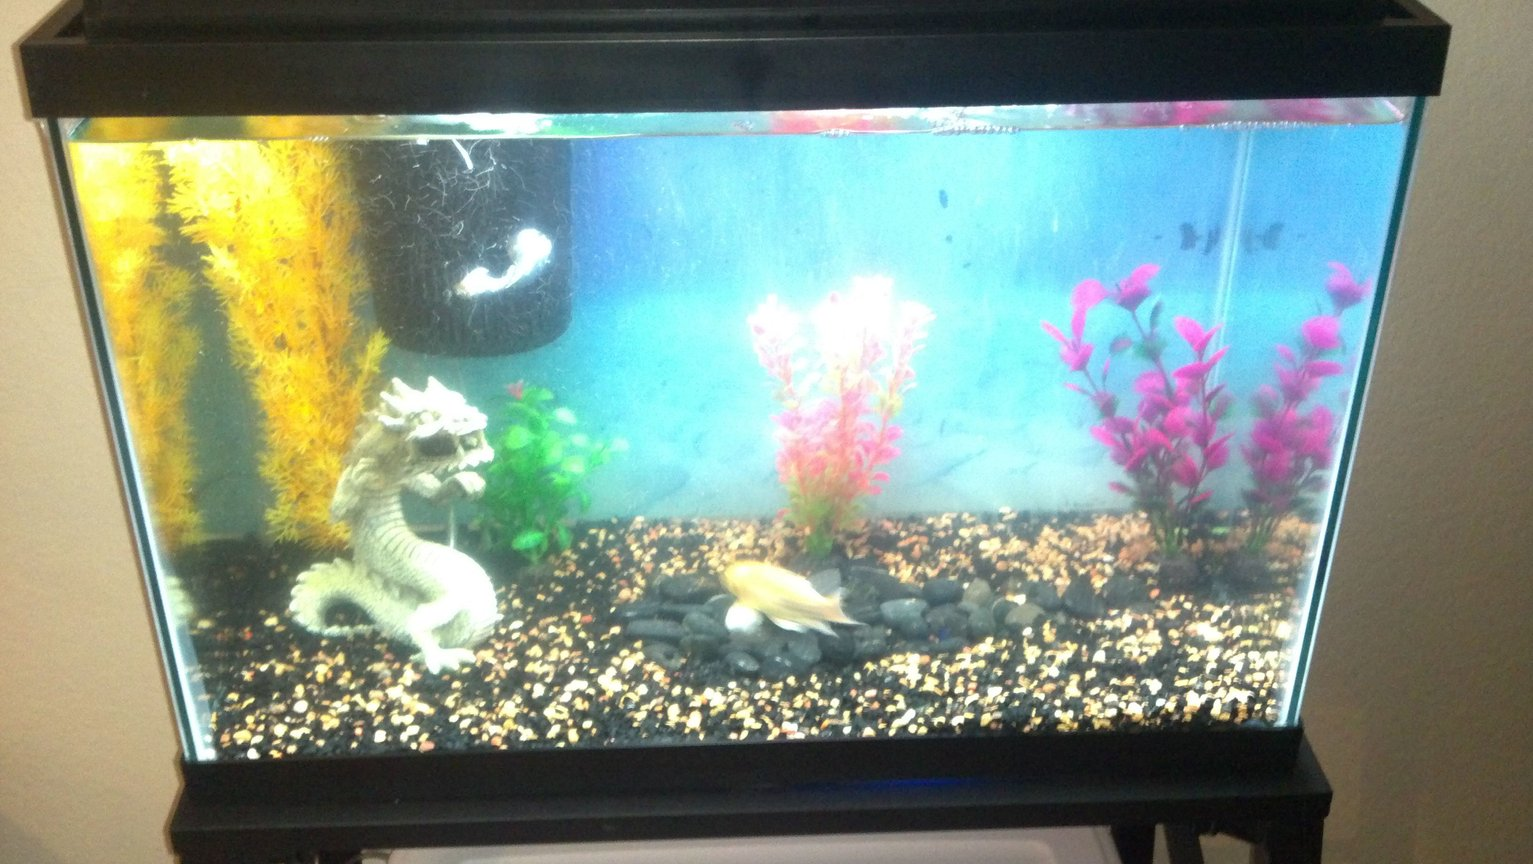 20 gallons freshwater fish tank (mostly fish and non-living decorations) - My week ld brand new wal-mart special.